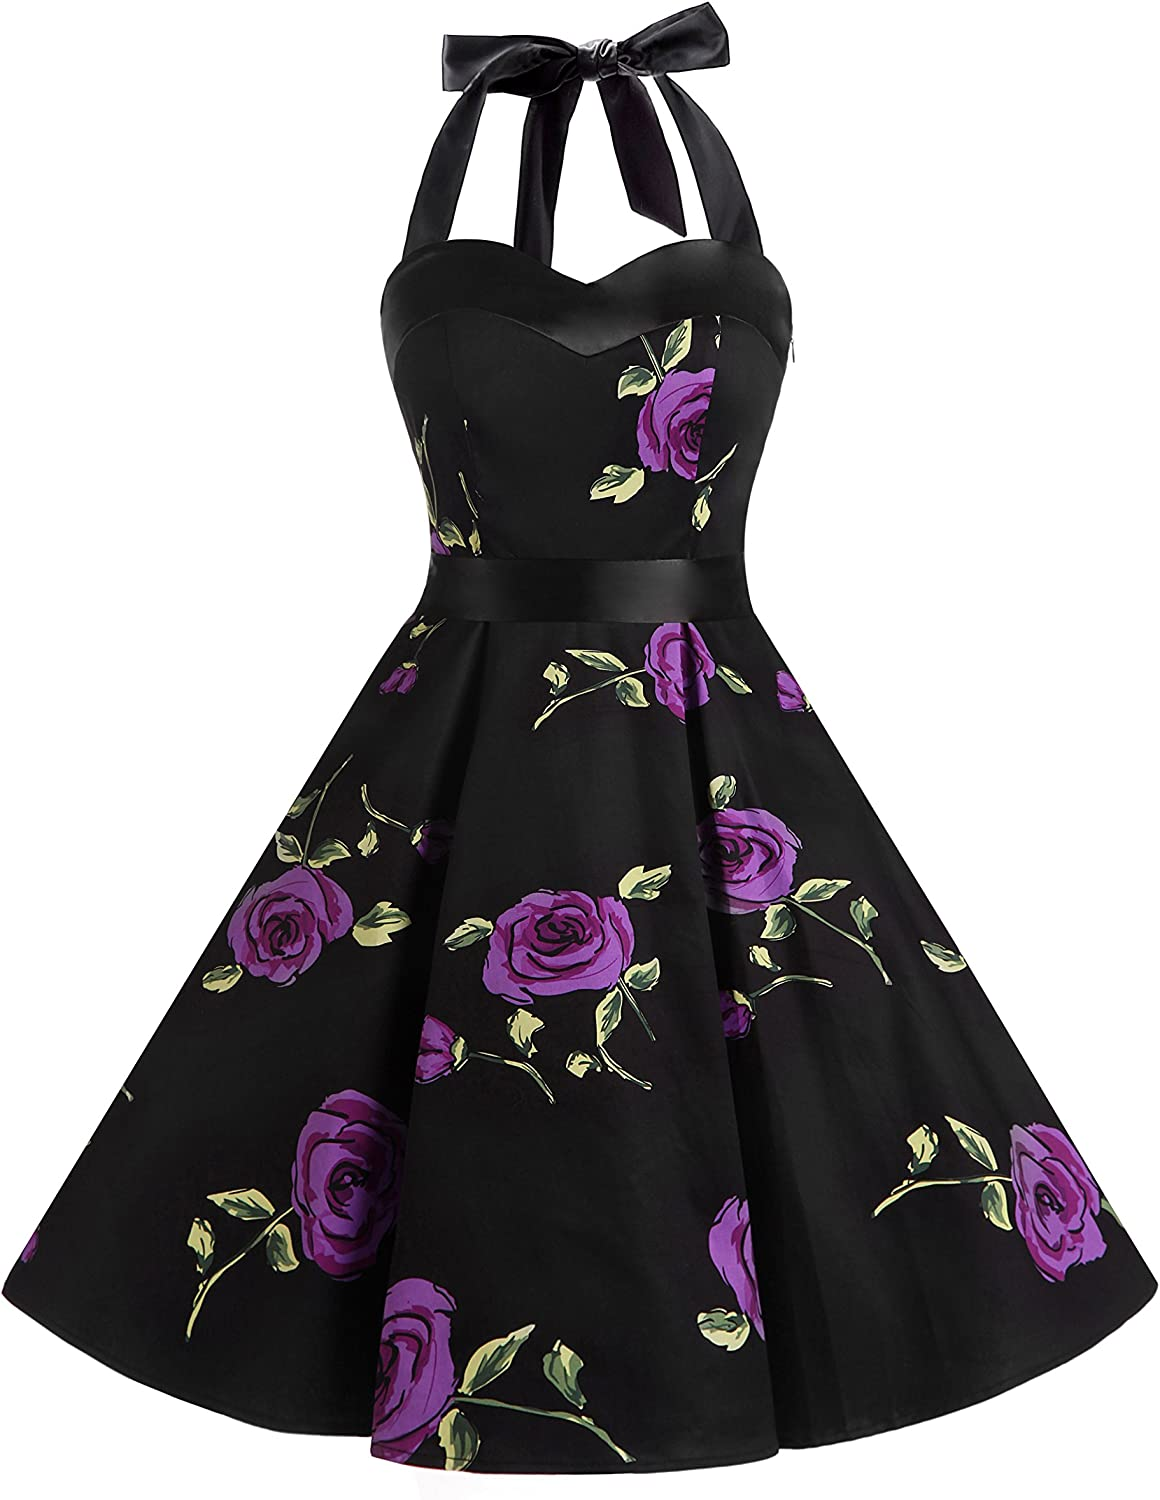 TALLA M. Dresstells® Halter 50s Rockabilly Polka Dots Audrey Dress Retro Cocktail Dress Purpleflower M